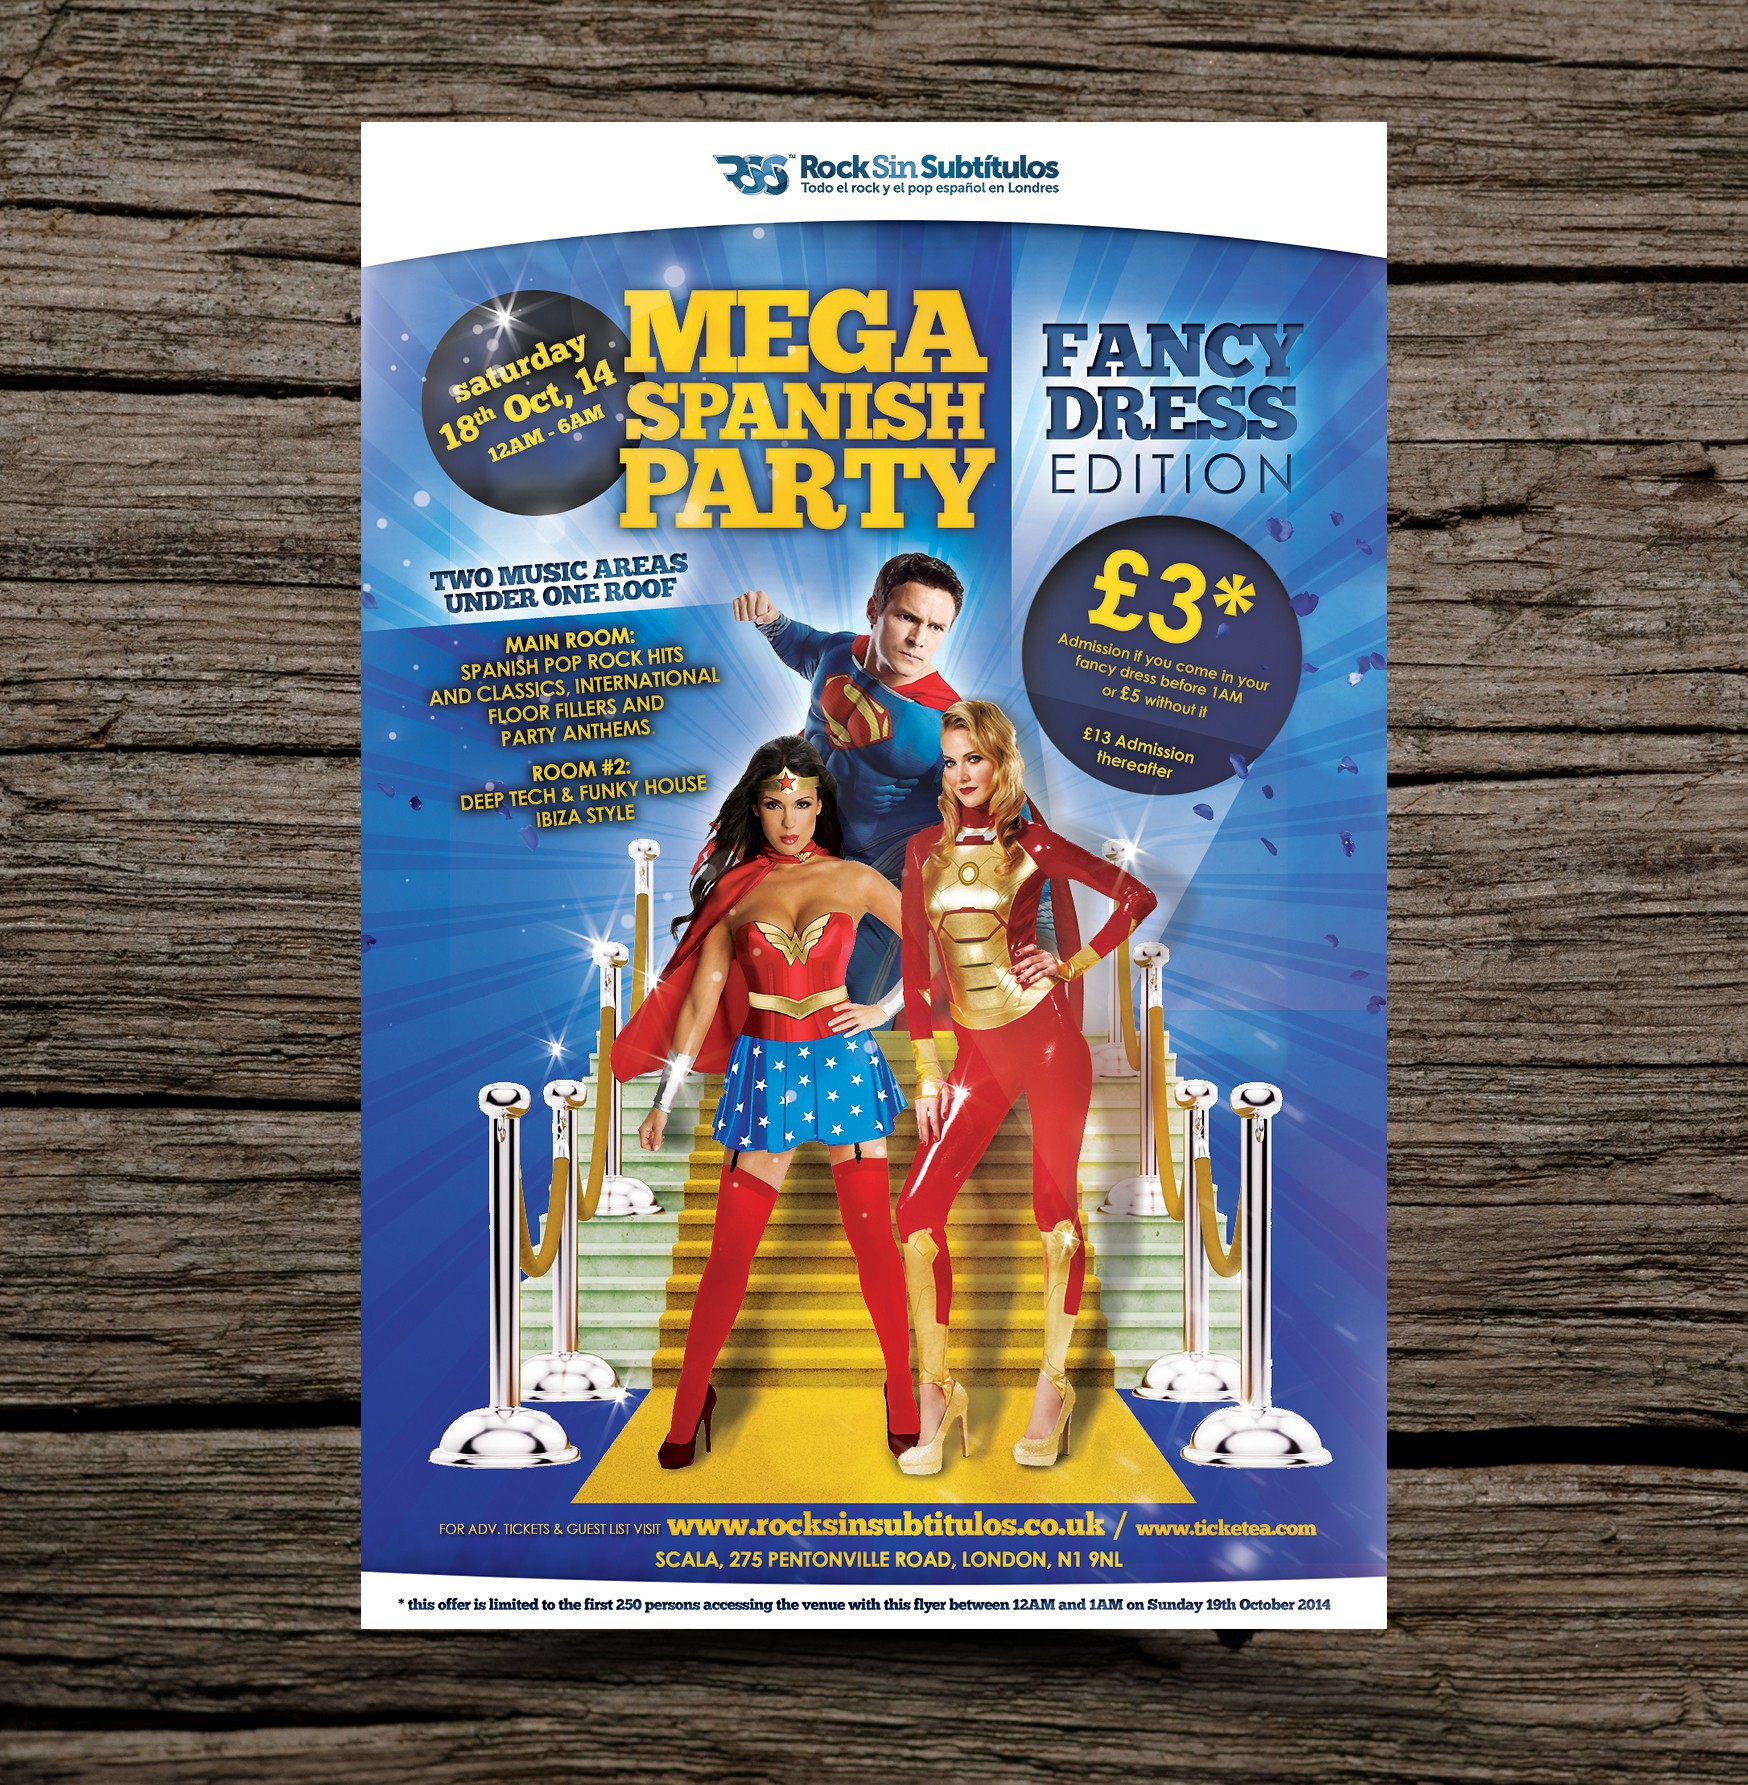 URGENT Colorful A6 Flyer design needed for a Fancy dress club night in London (72 Hours)